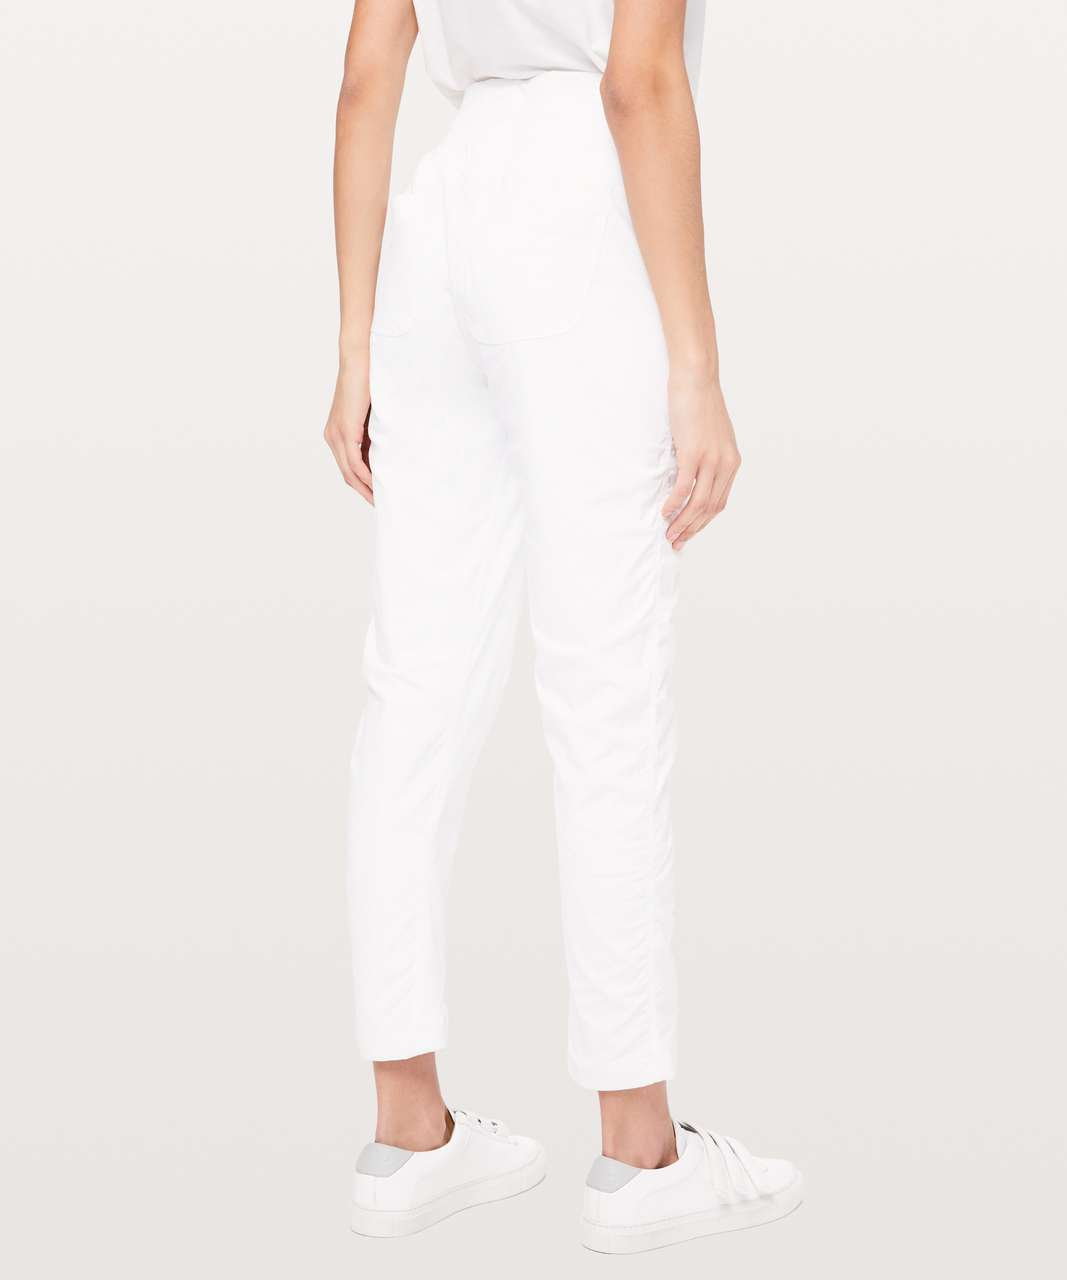 "Lululemon Street To Studio Pant II *Lined 28"" - White"